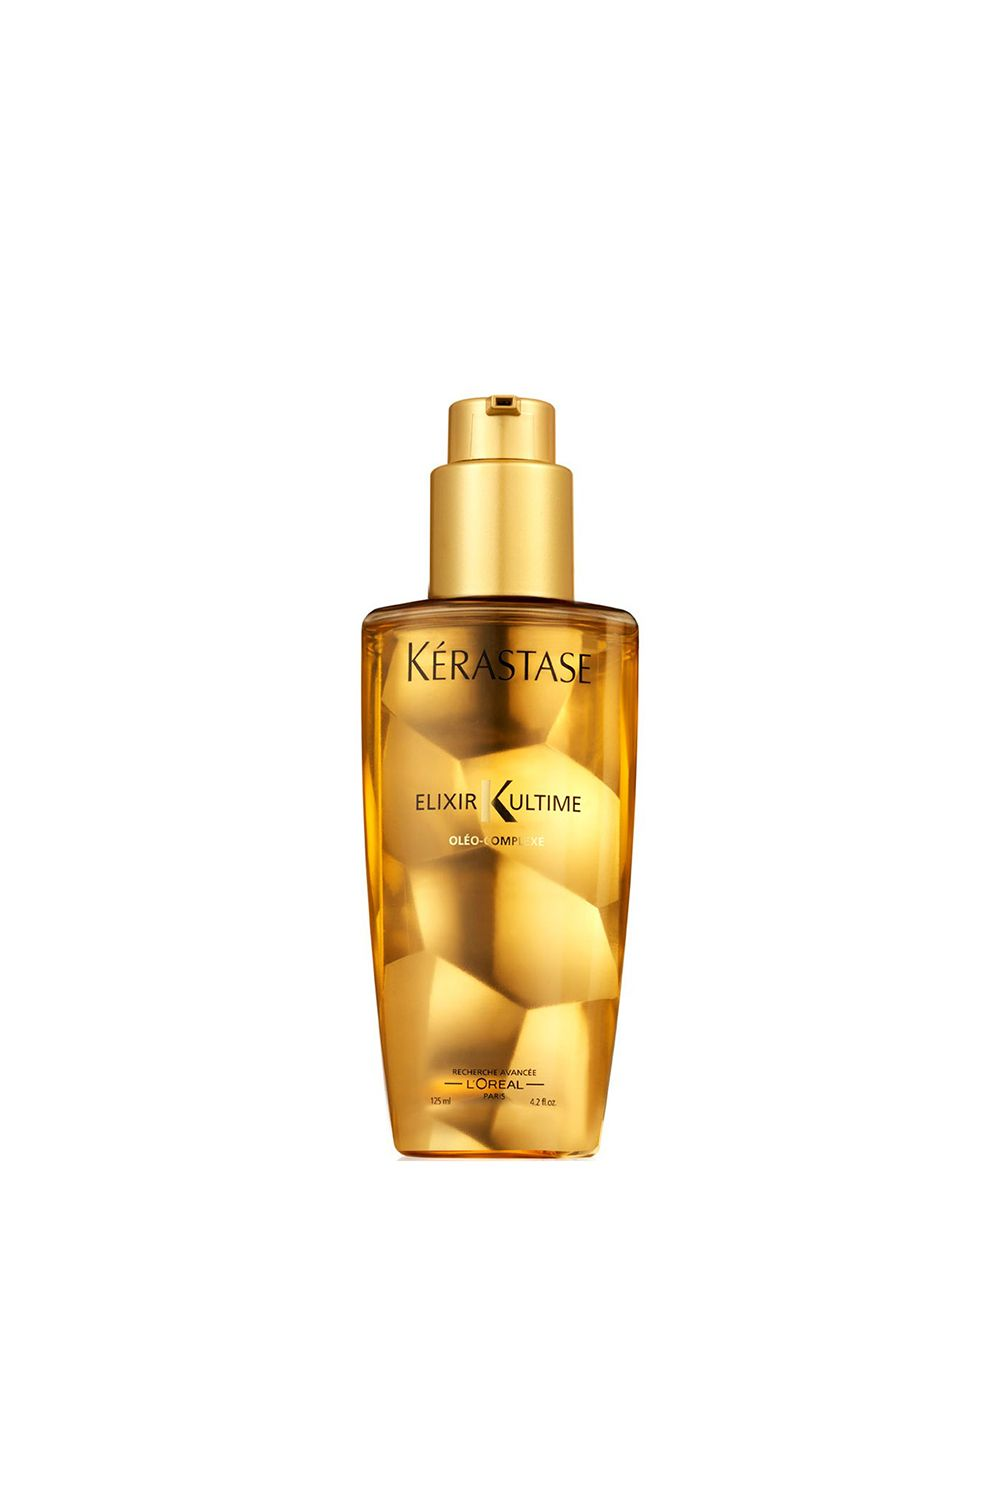 "<p>Two of the worst hair injustices? Split ends and breakage from hot tools. This elixir acts as as a counterpoint to heat damage, taming and smoothing ends without any metal involved. </p><p><strong>Kerastase Elixir Ultime Original Oil, $58; <a href=""http://www.kerastase-usa.com/elixir-ultime-original-oil/EU00000.html#"" target=""_blank"">kerastase-usa.com</a>. </strong></p>"